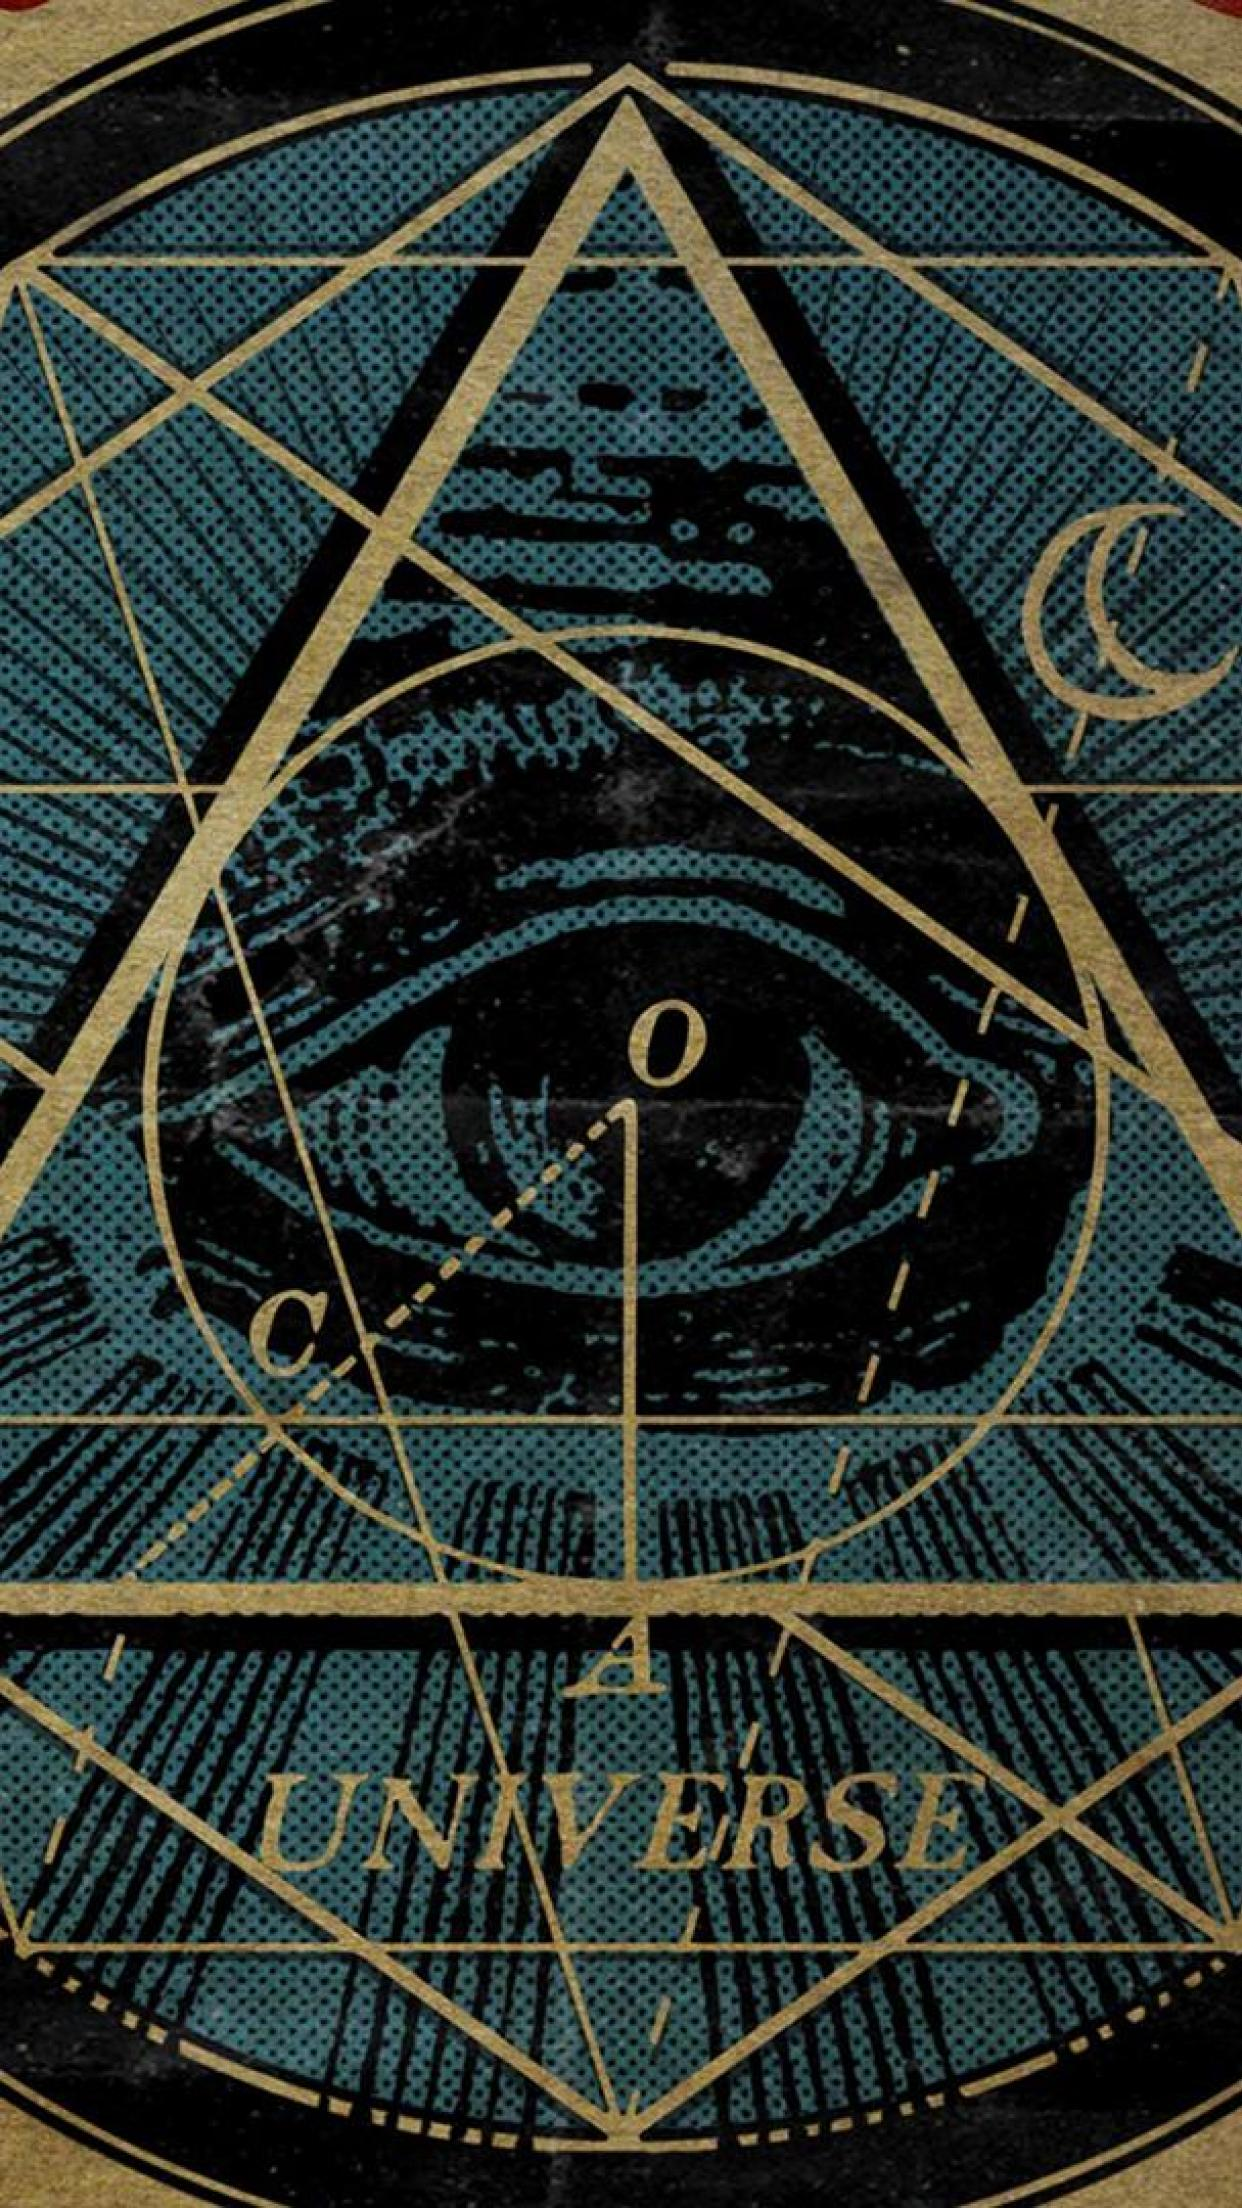 Wallpaper Gravity Falls Iphone Illuminati Control All Wallpaper For Iphone X 8 7 6